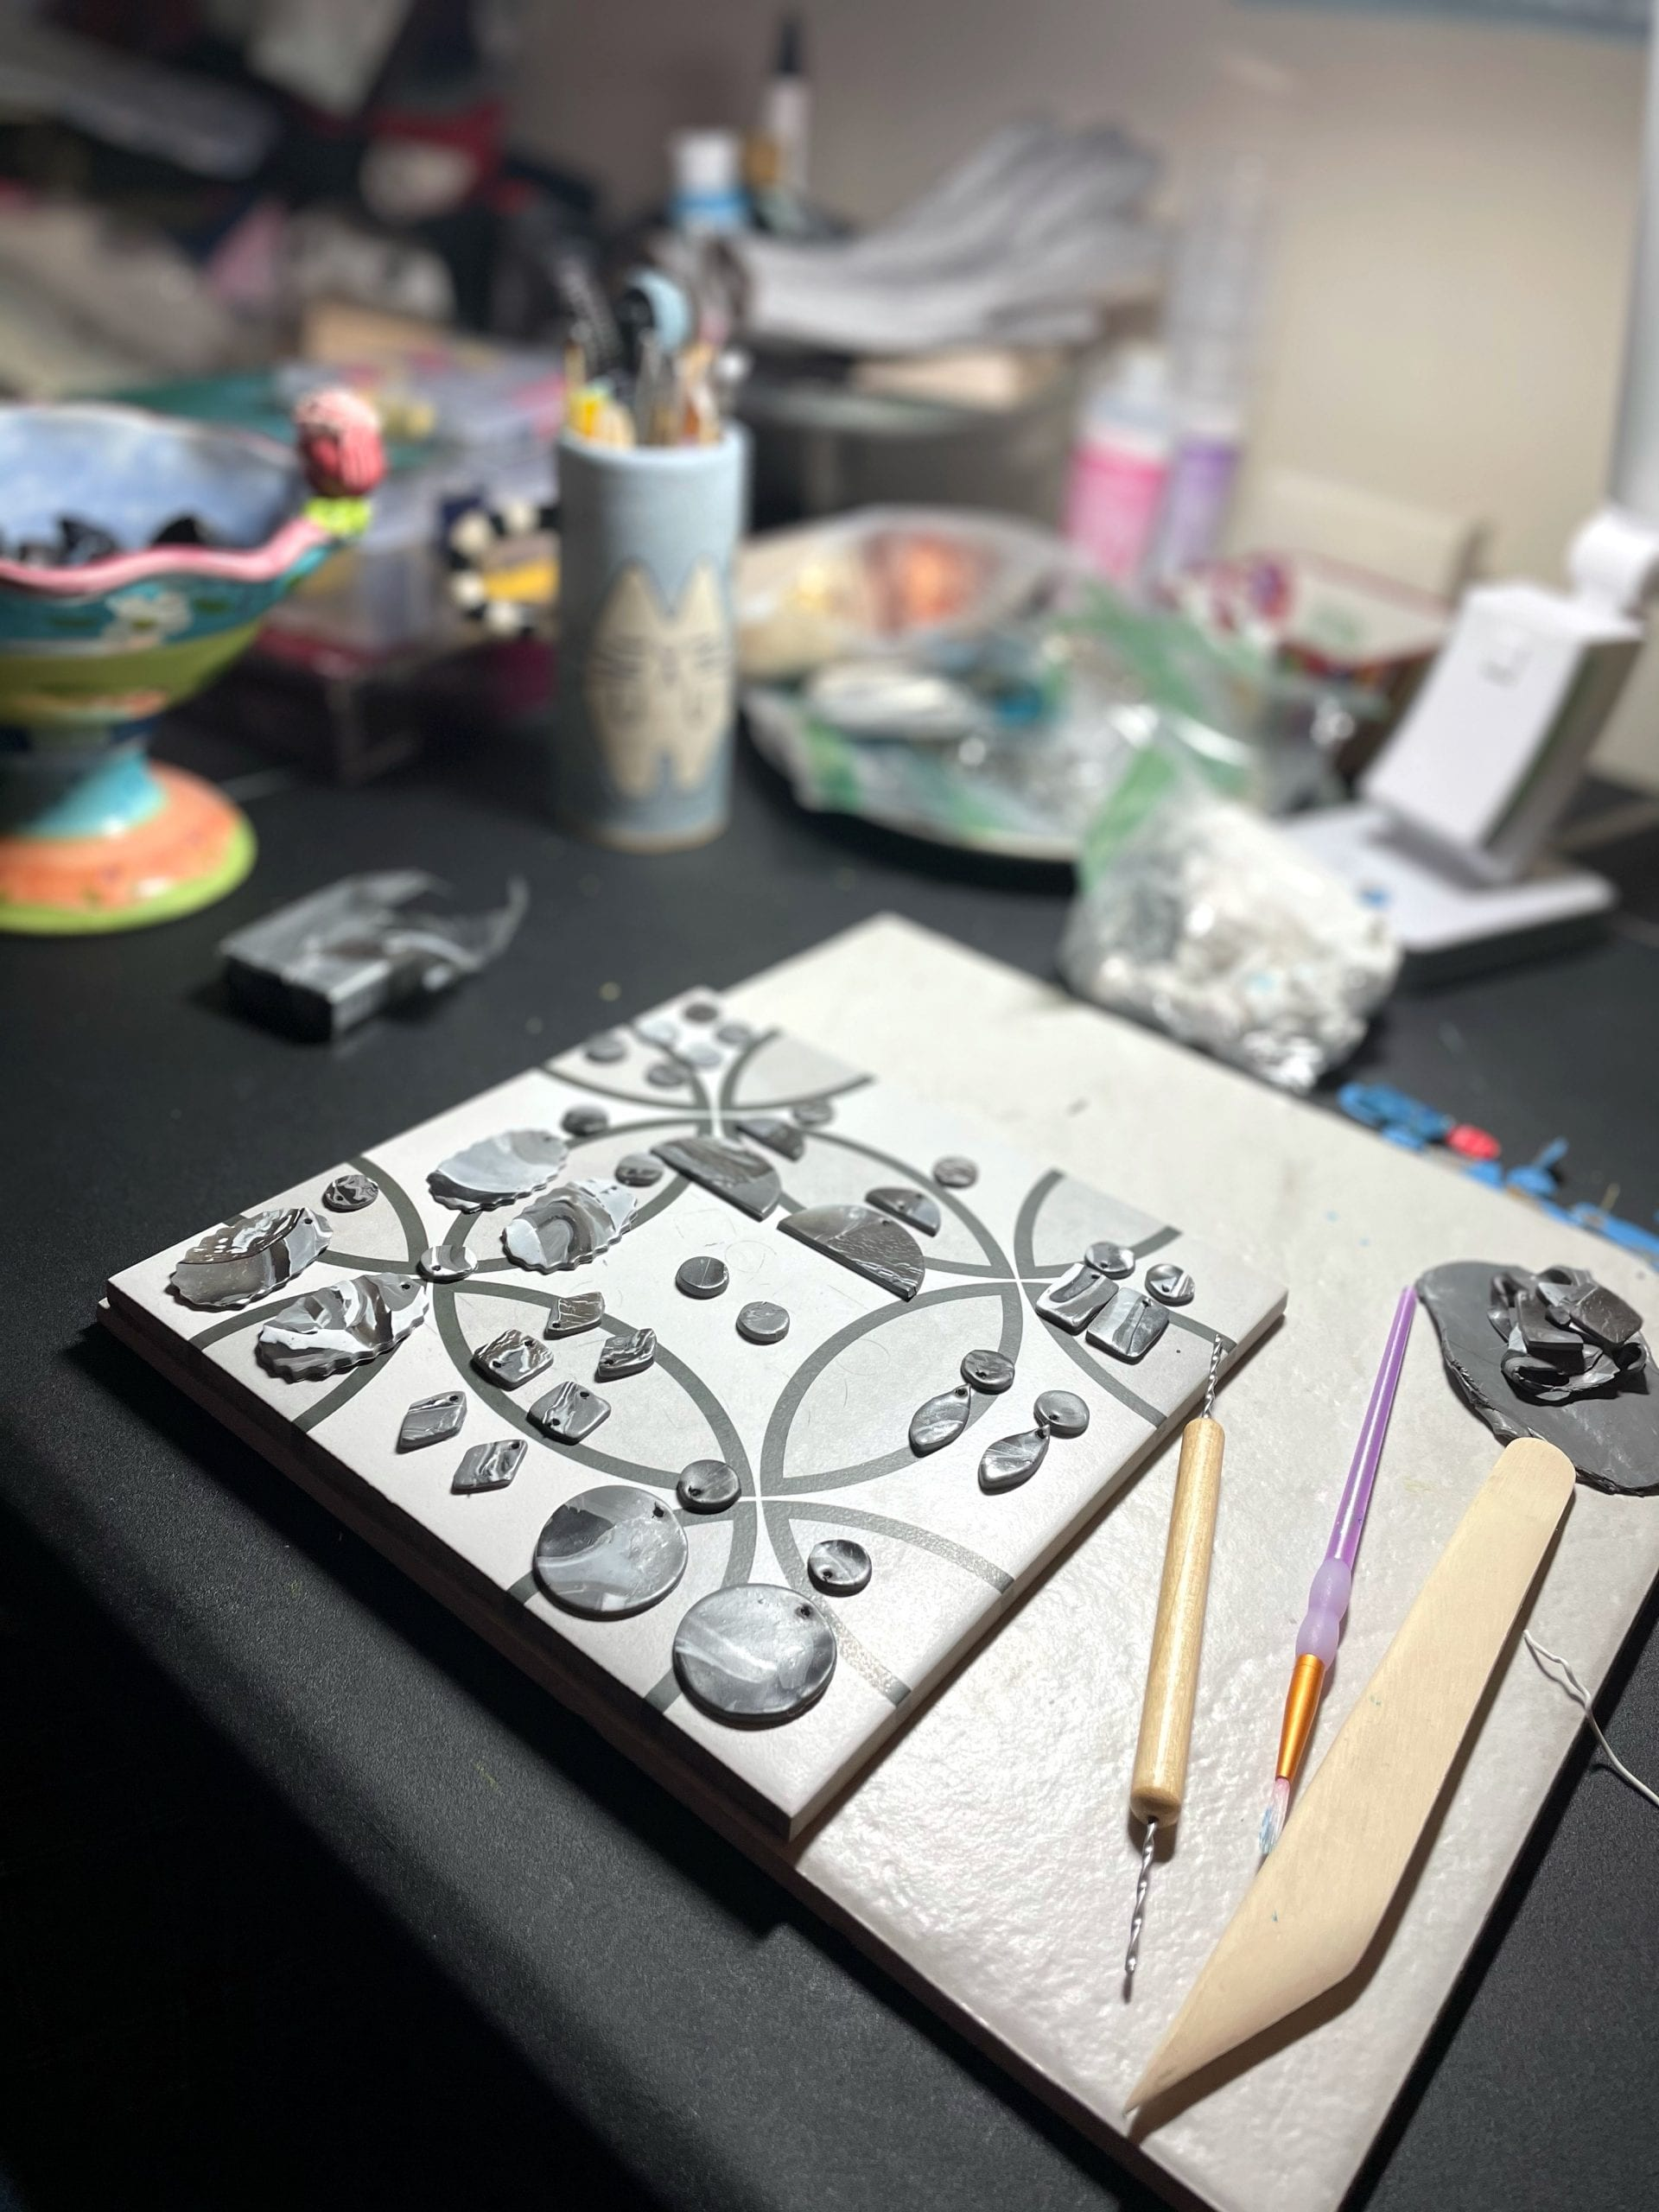 image of jewelry in progress. One of the things I do now instead of research recipes for diet culture.